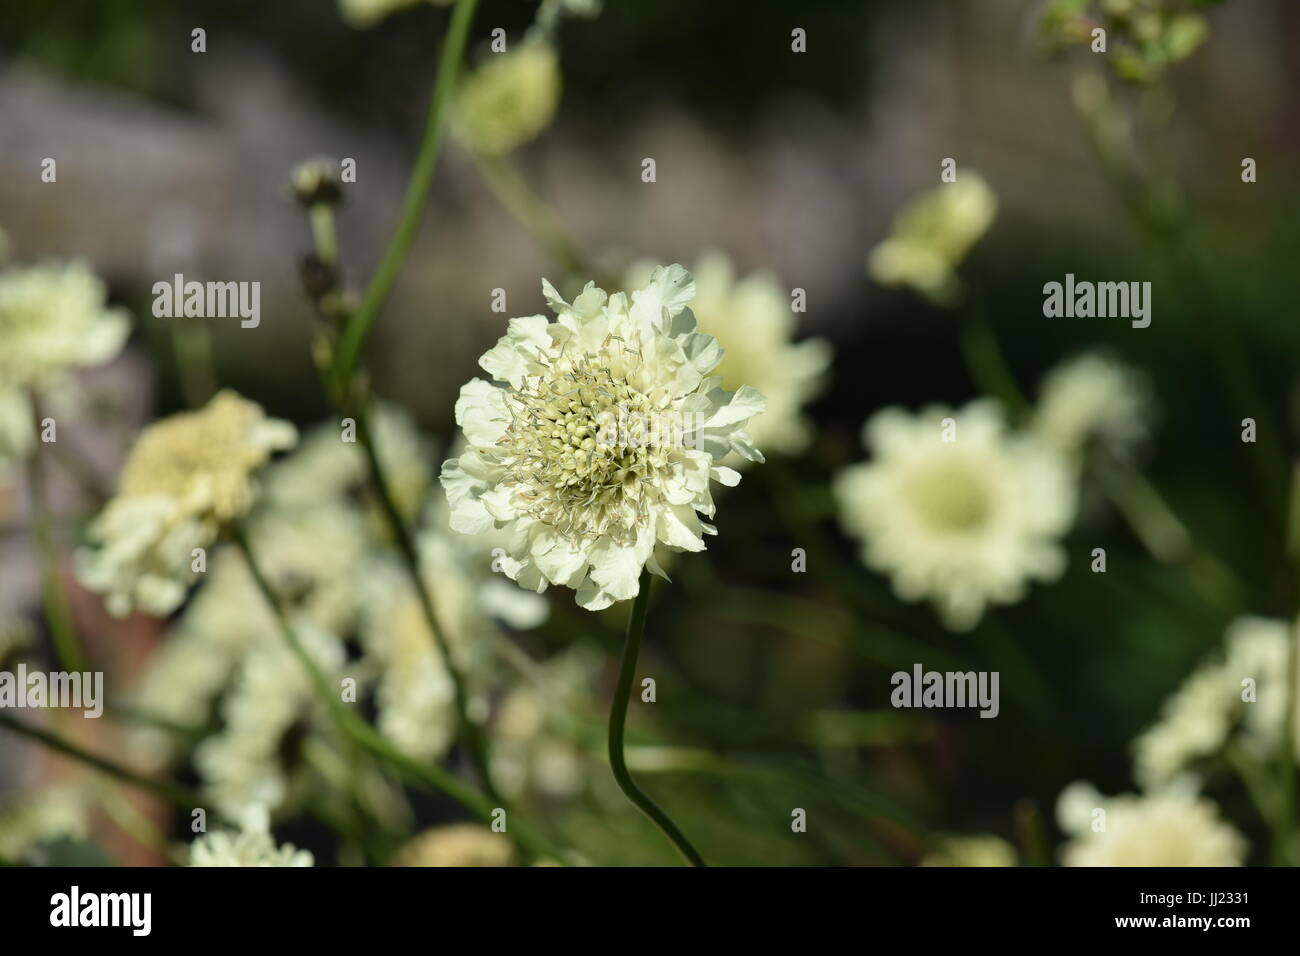 White Scabious Or Scabiosa Flower Stock Photo 148793093 Alamy